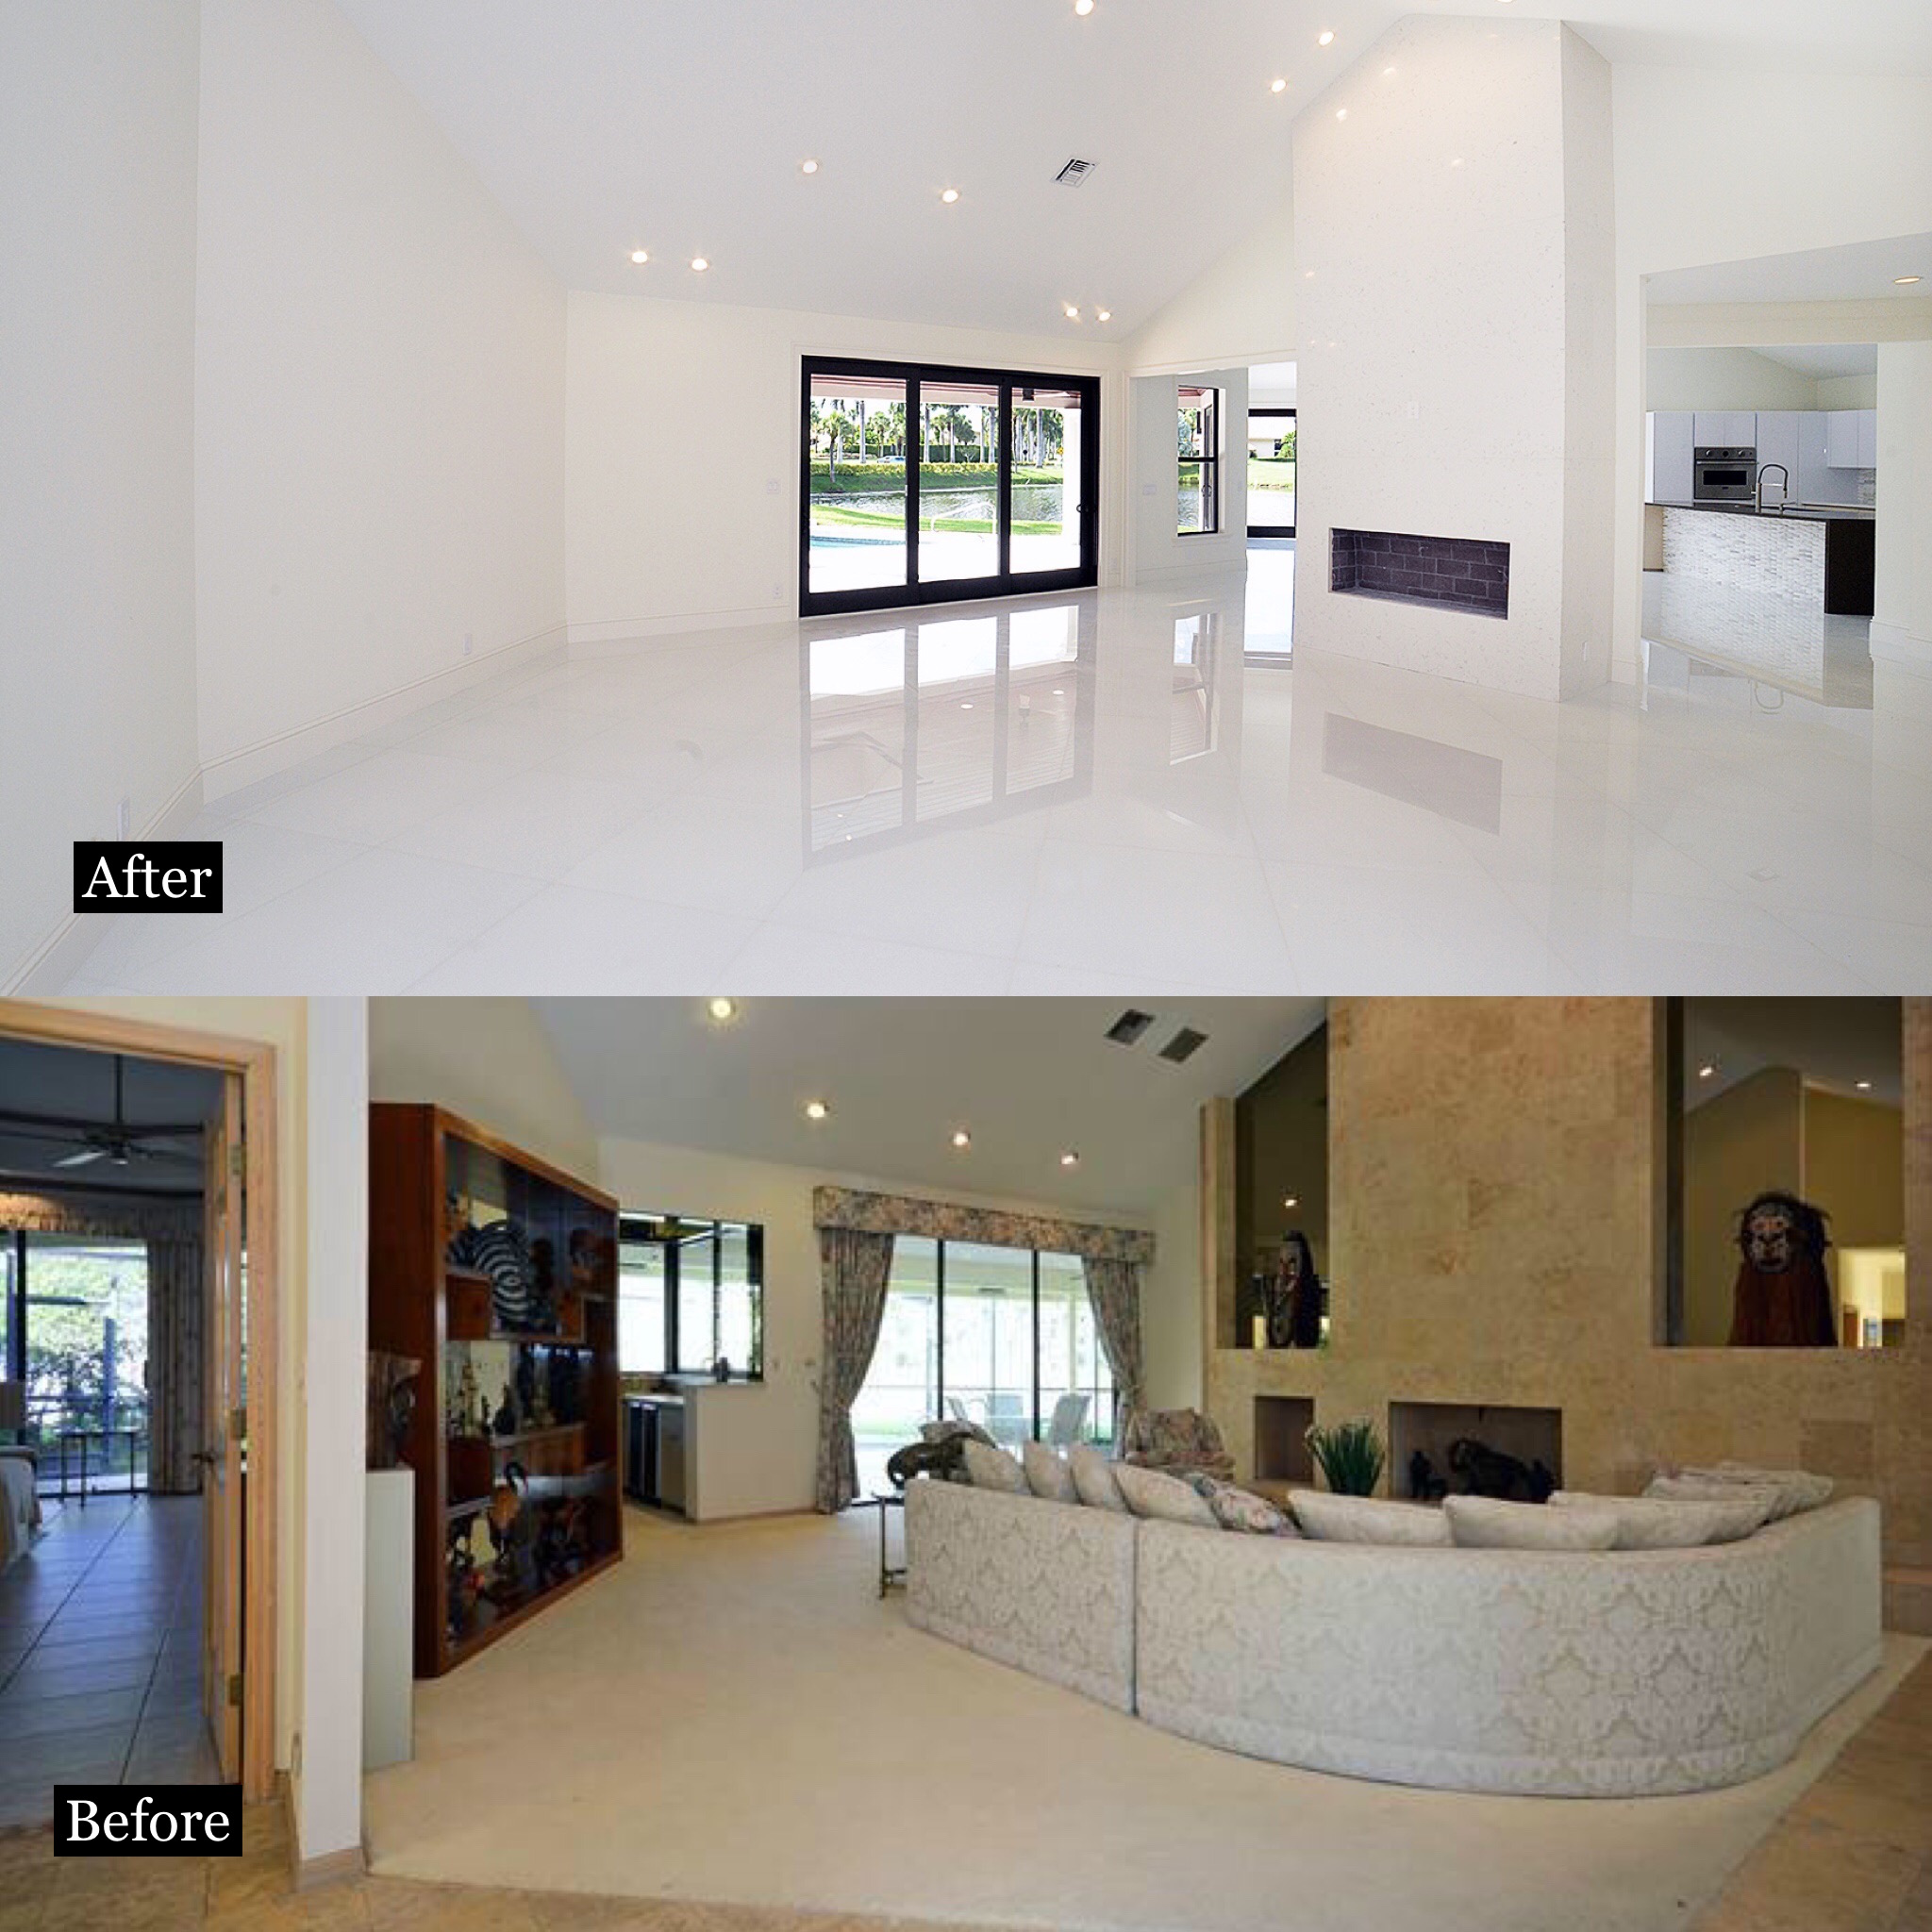 mag real estate & development transformation before after construction general contractor builder renovation south florida boca raton new custom luxury home for sale interior design st. andrews country club 7026 ayrshire lane 4.jpg